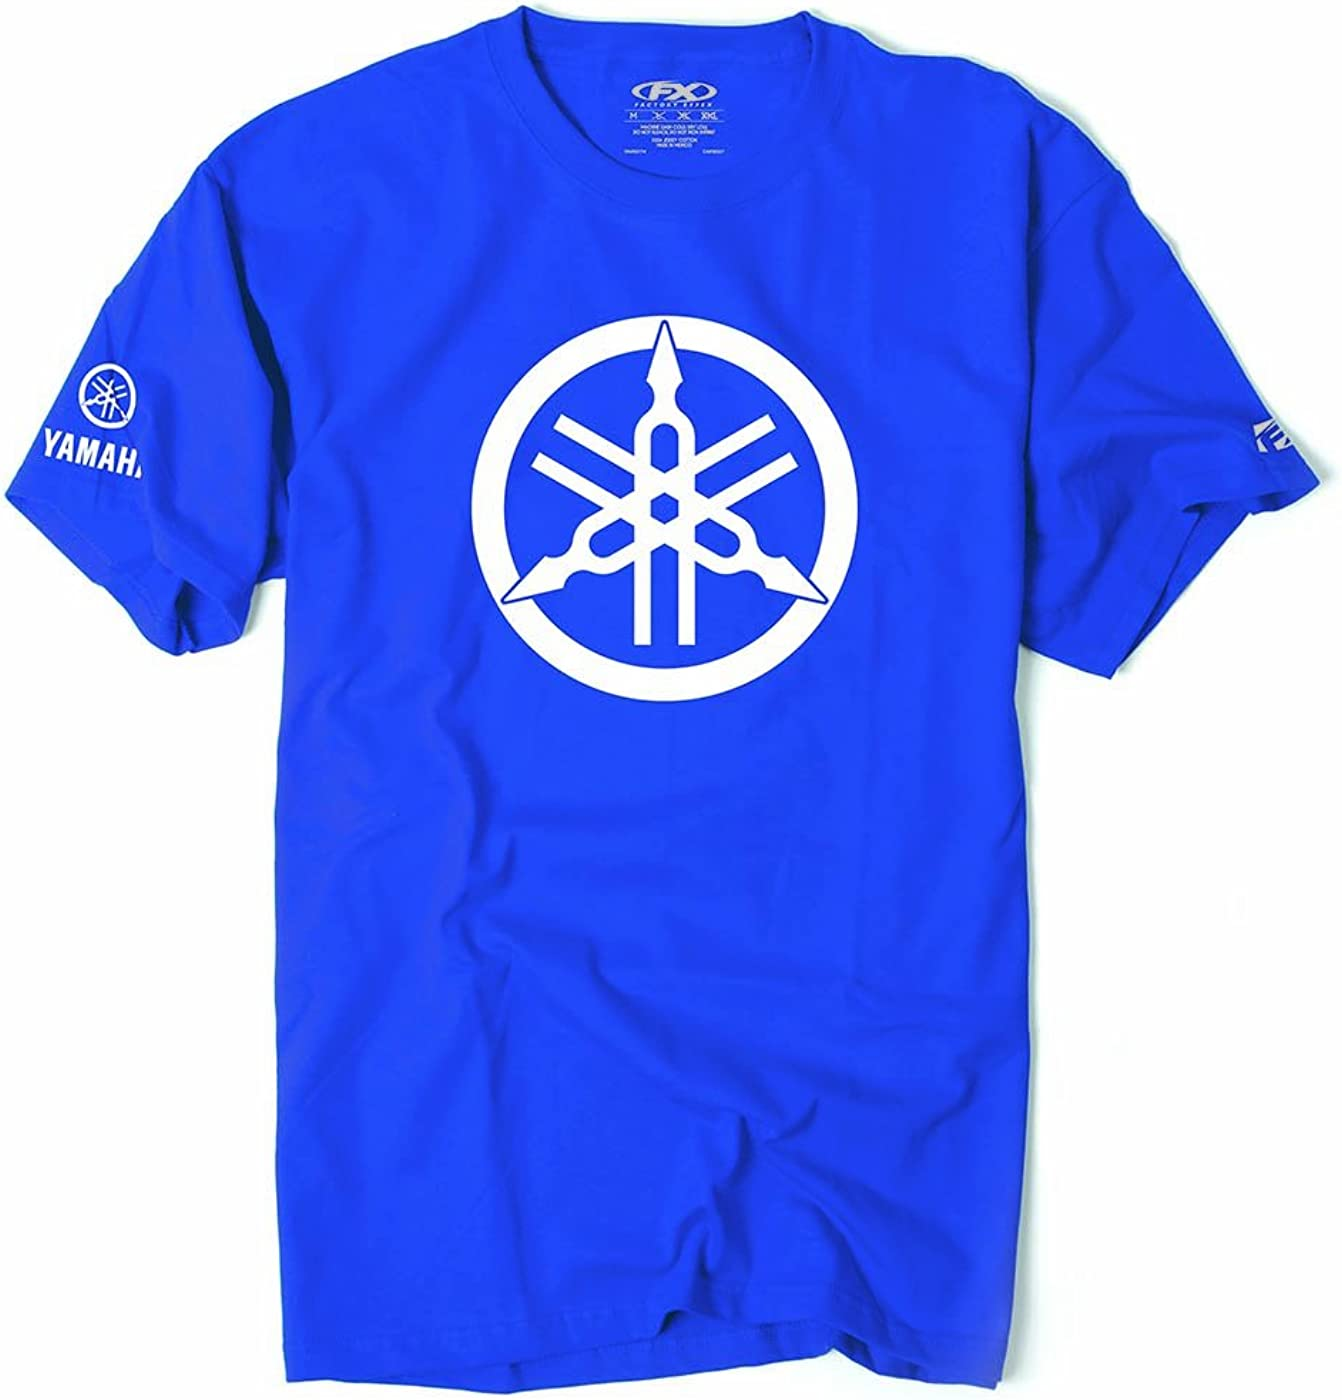 Factory Effex 'YAMAHA' 2D Dallas Mall T-Shirt Attention brand Tuning Fork